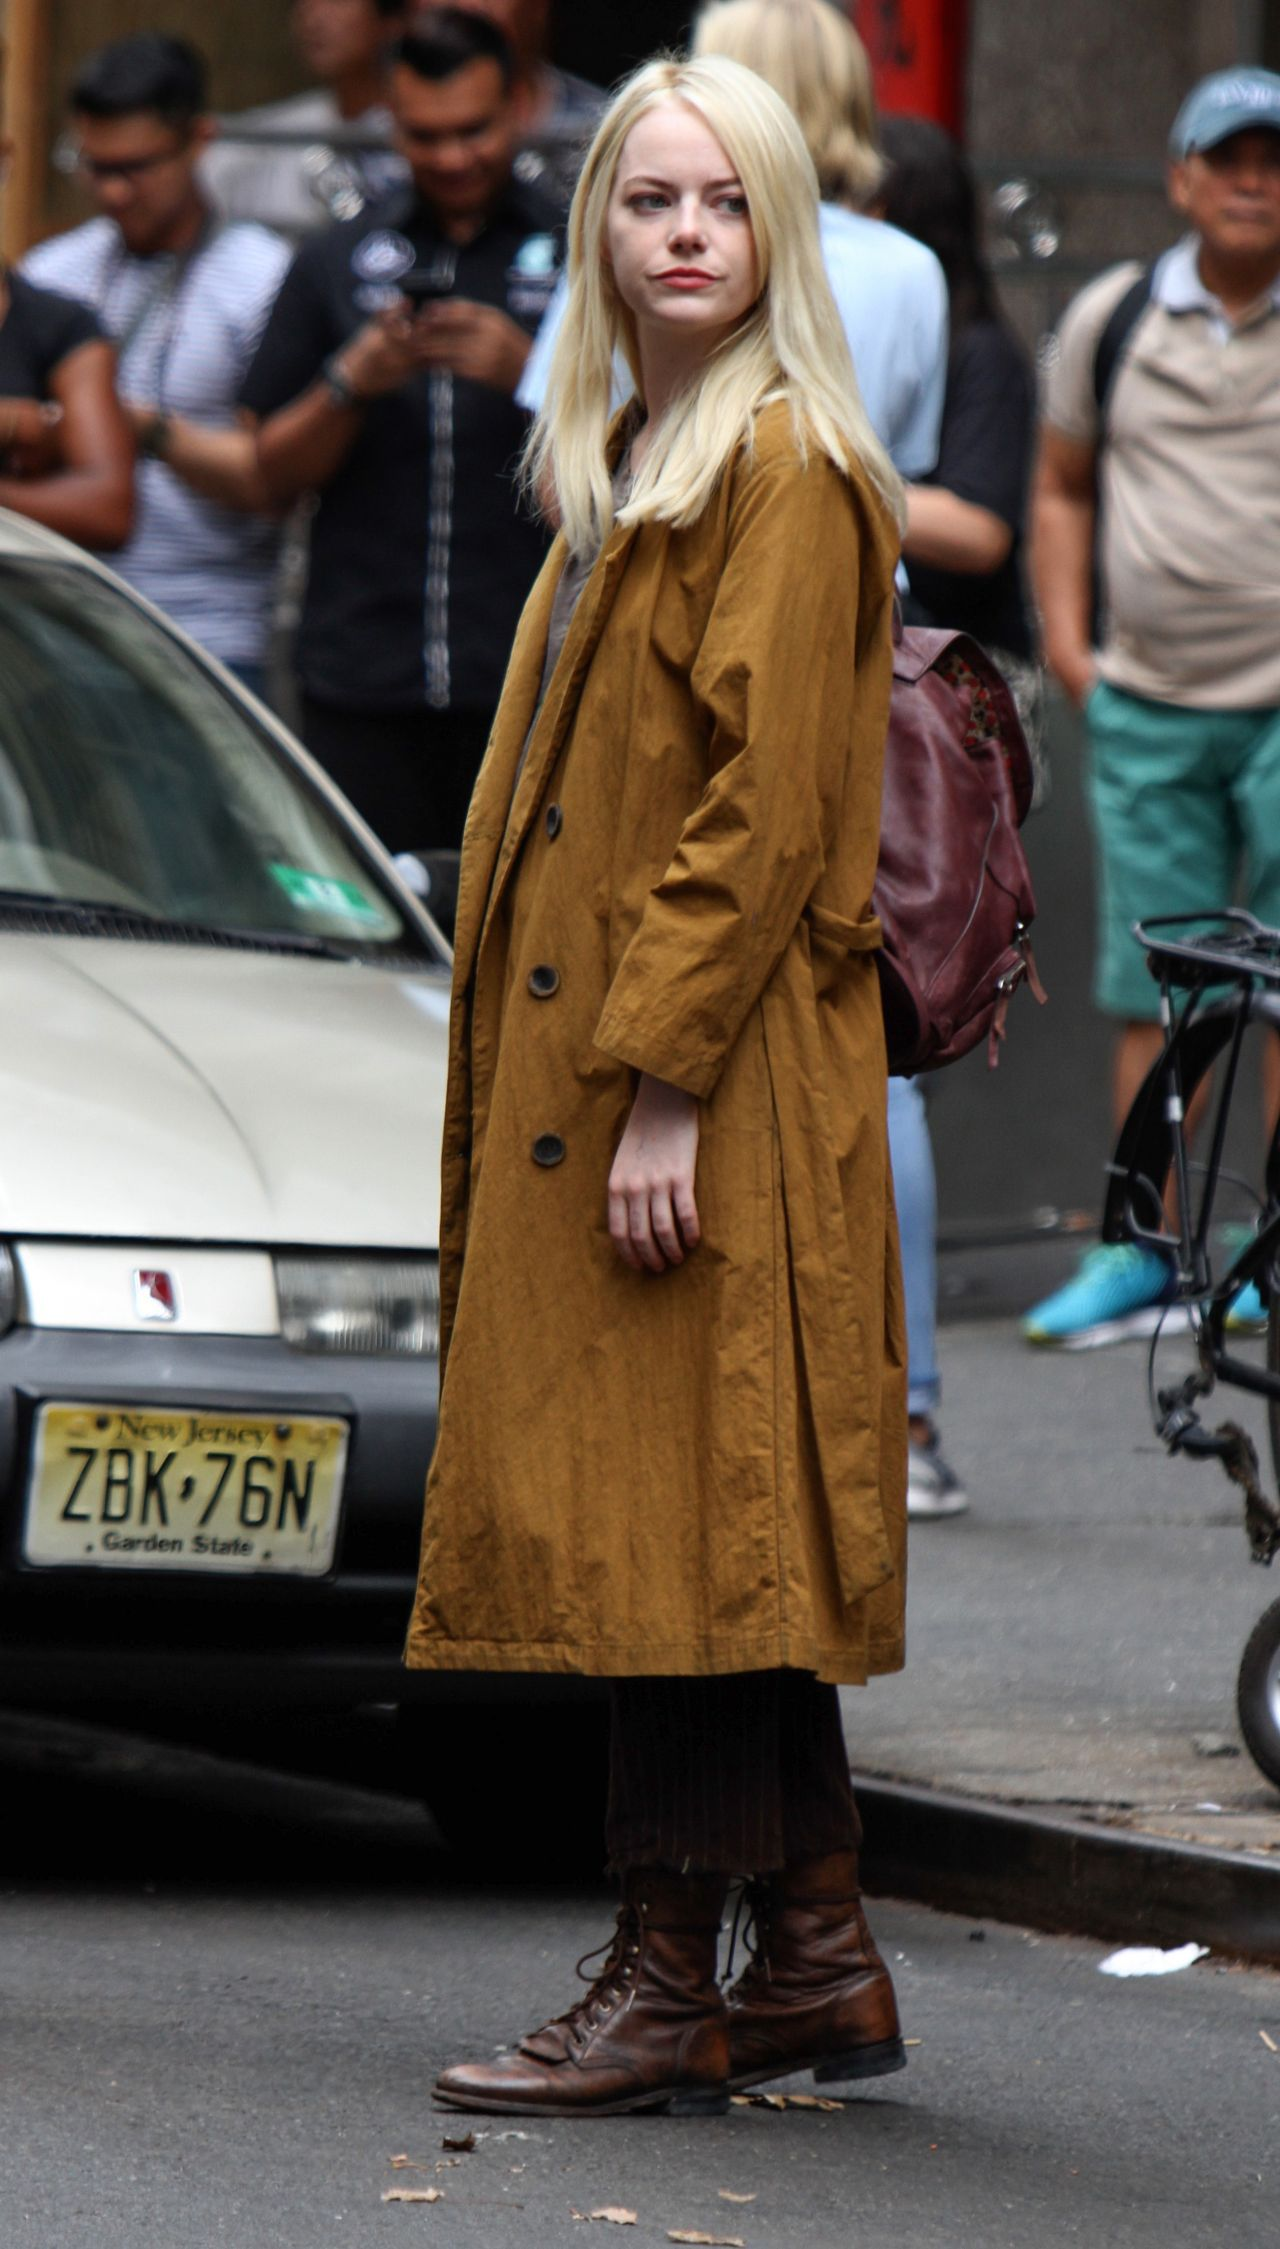 Emma stone shooting scenes on the set of maniac in long island nyc new pictures